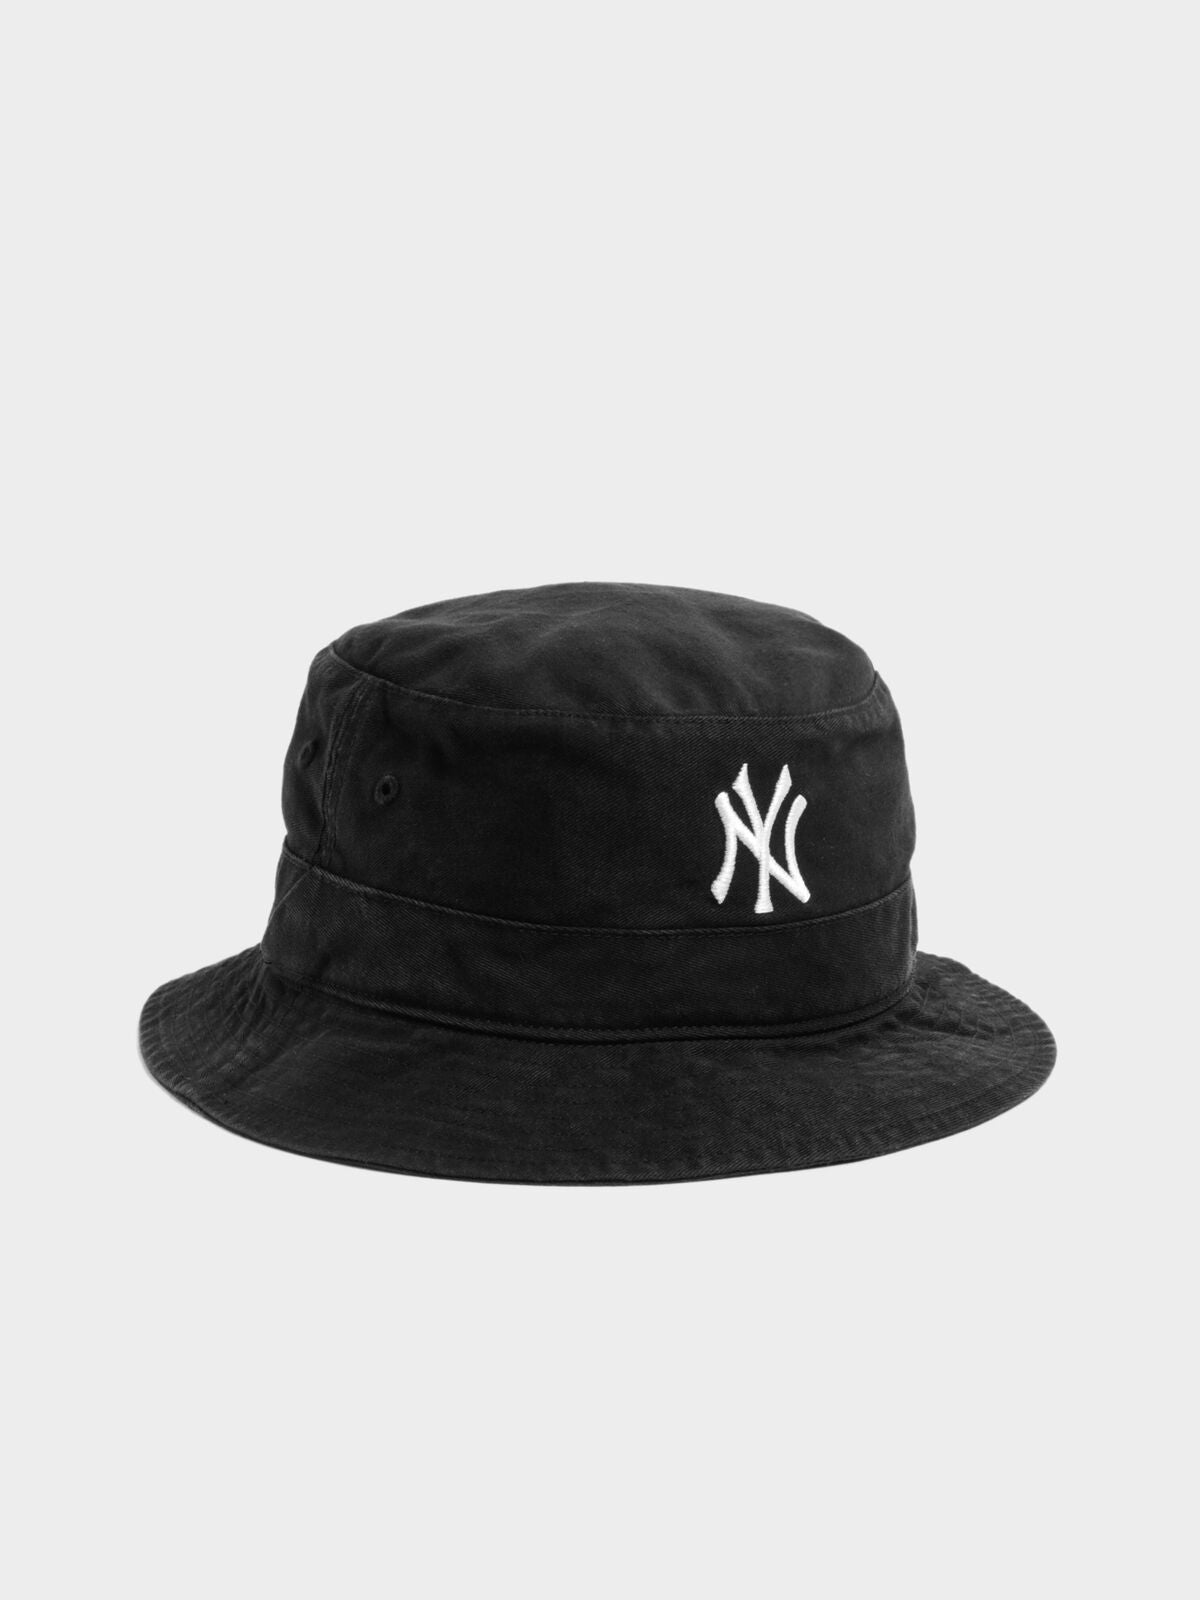 Yankees Bucket Hat in Black